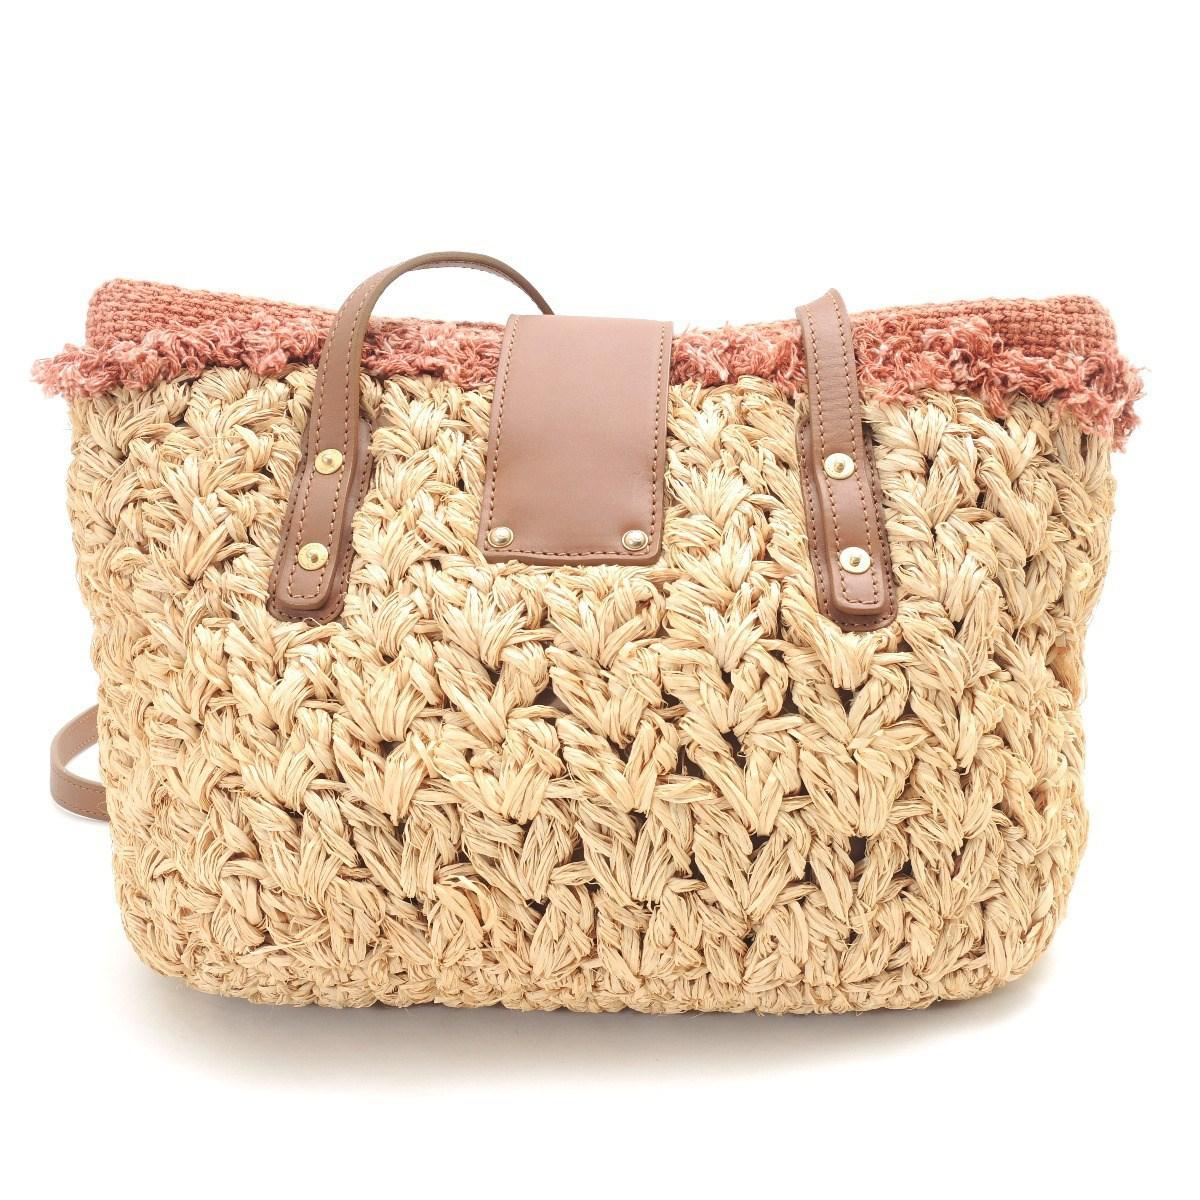 8a3e1ac7 Chanel Natural Straw Summer Bag Tote Bag